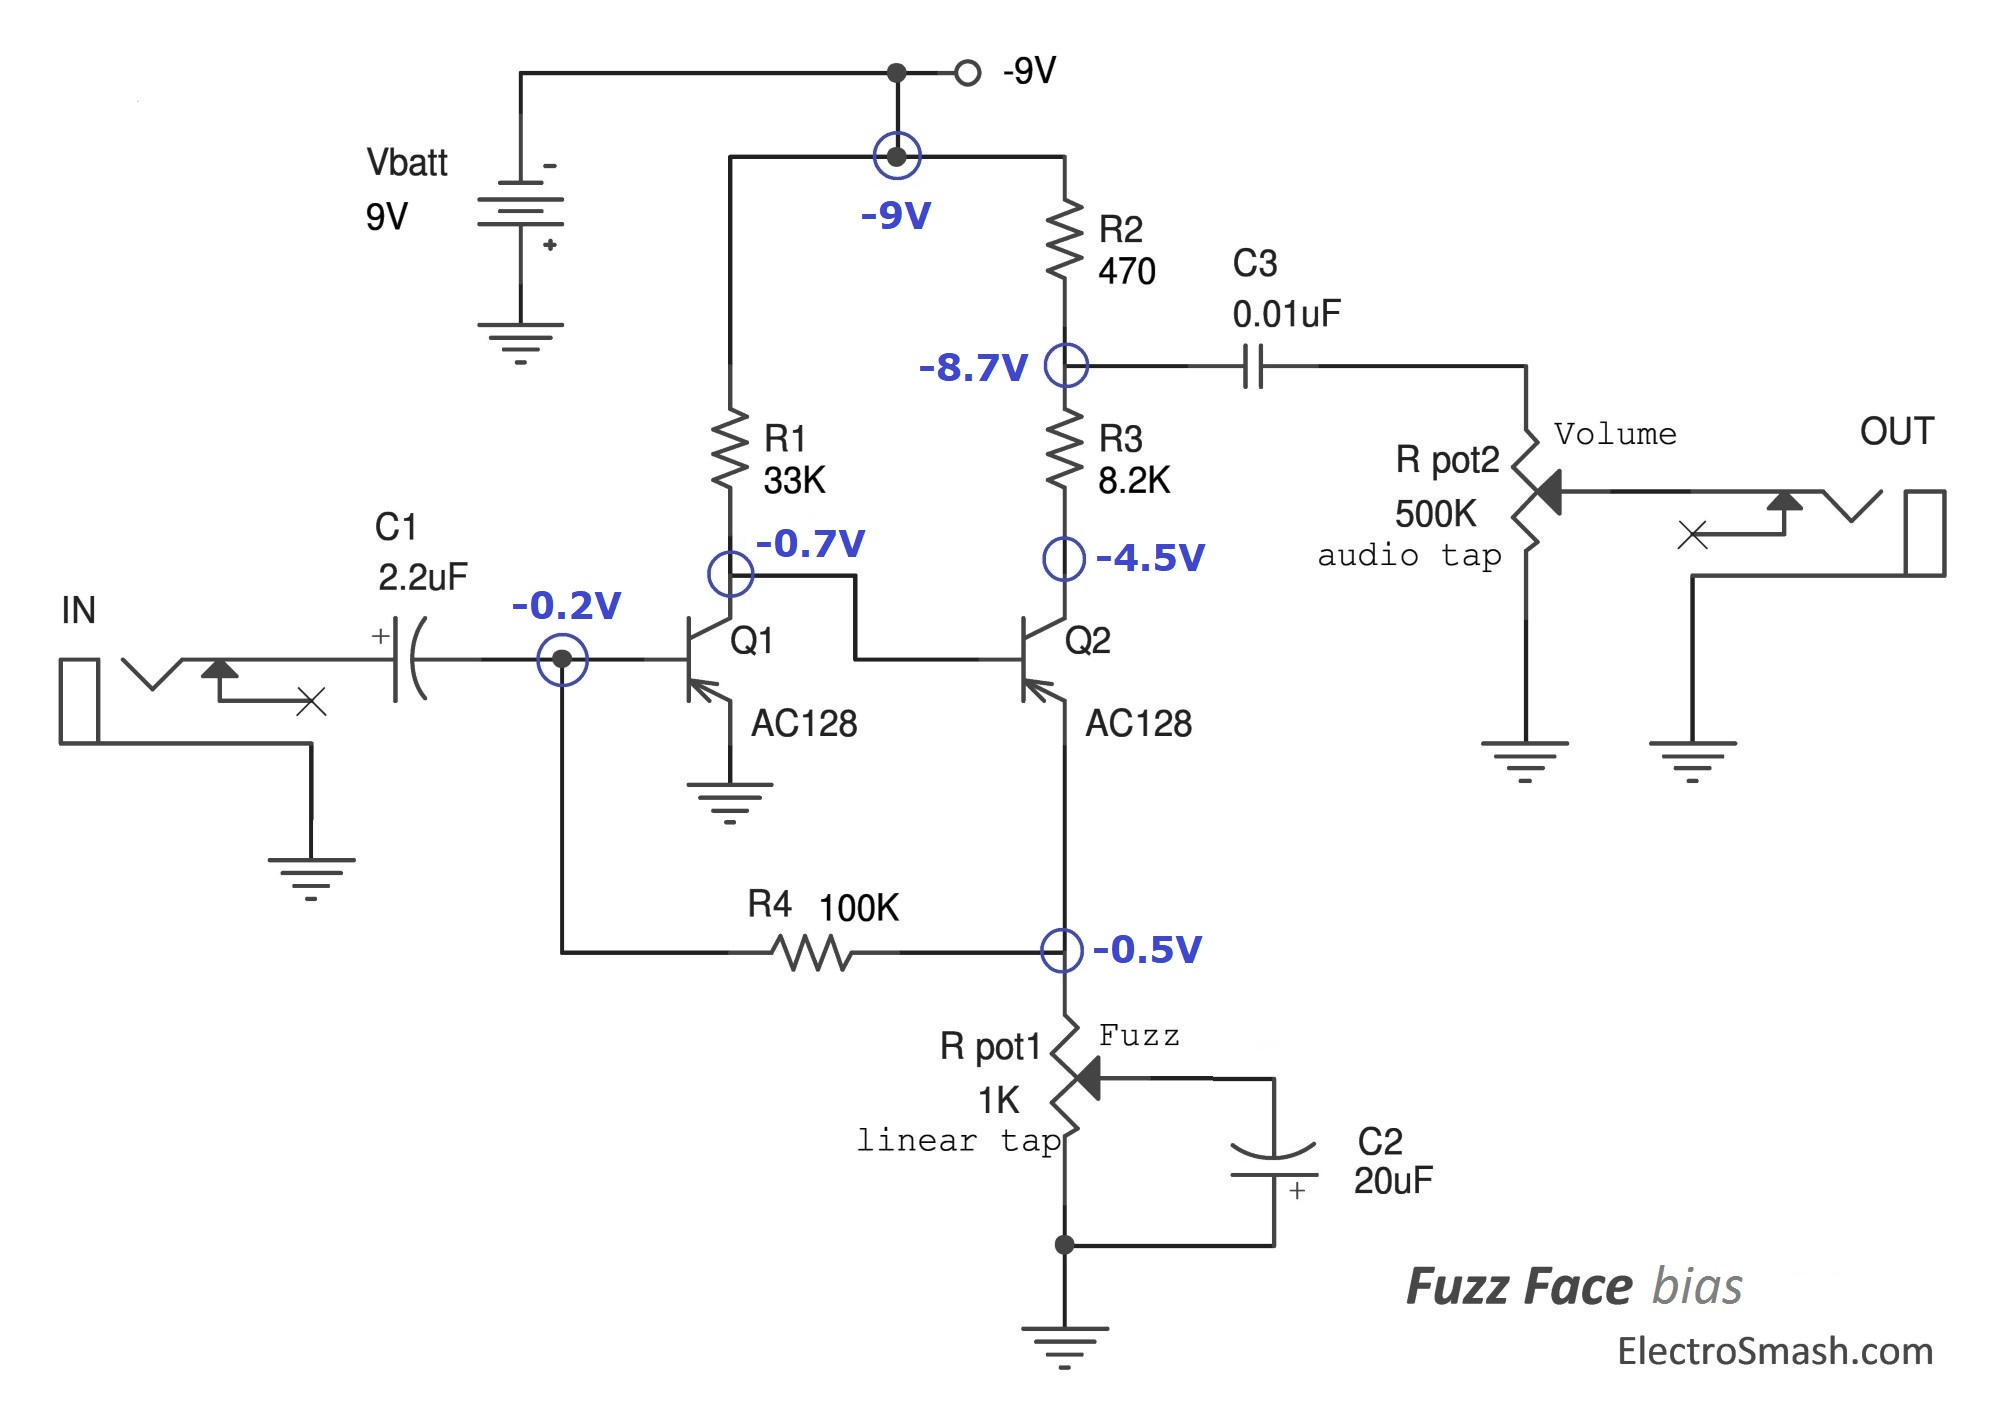 electrosmash fuzz face analysis Full Boost Schematic fuzz face bias circuit